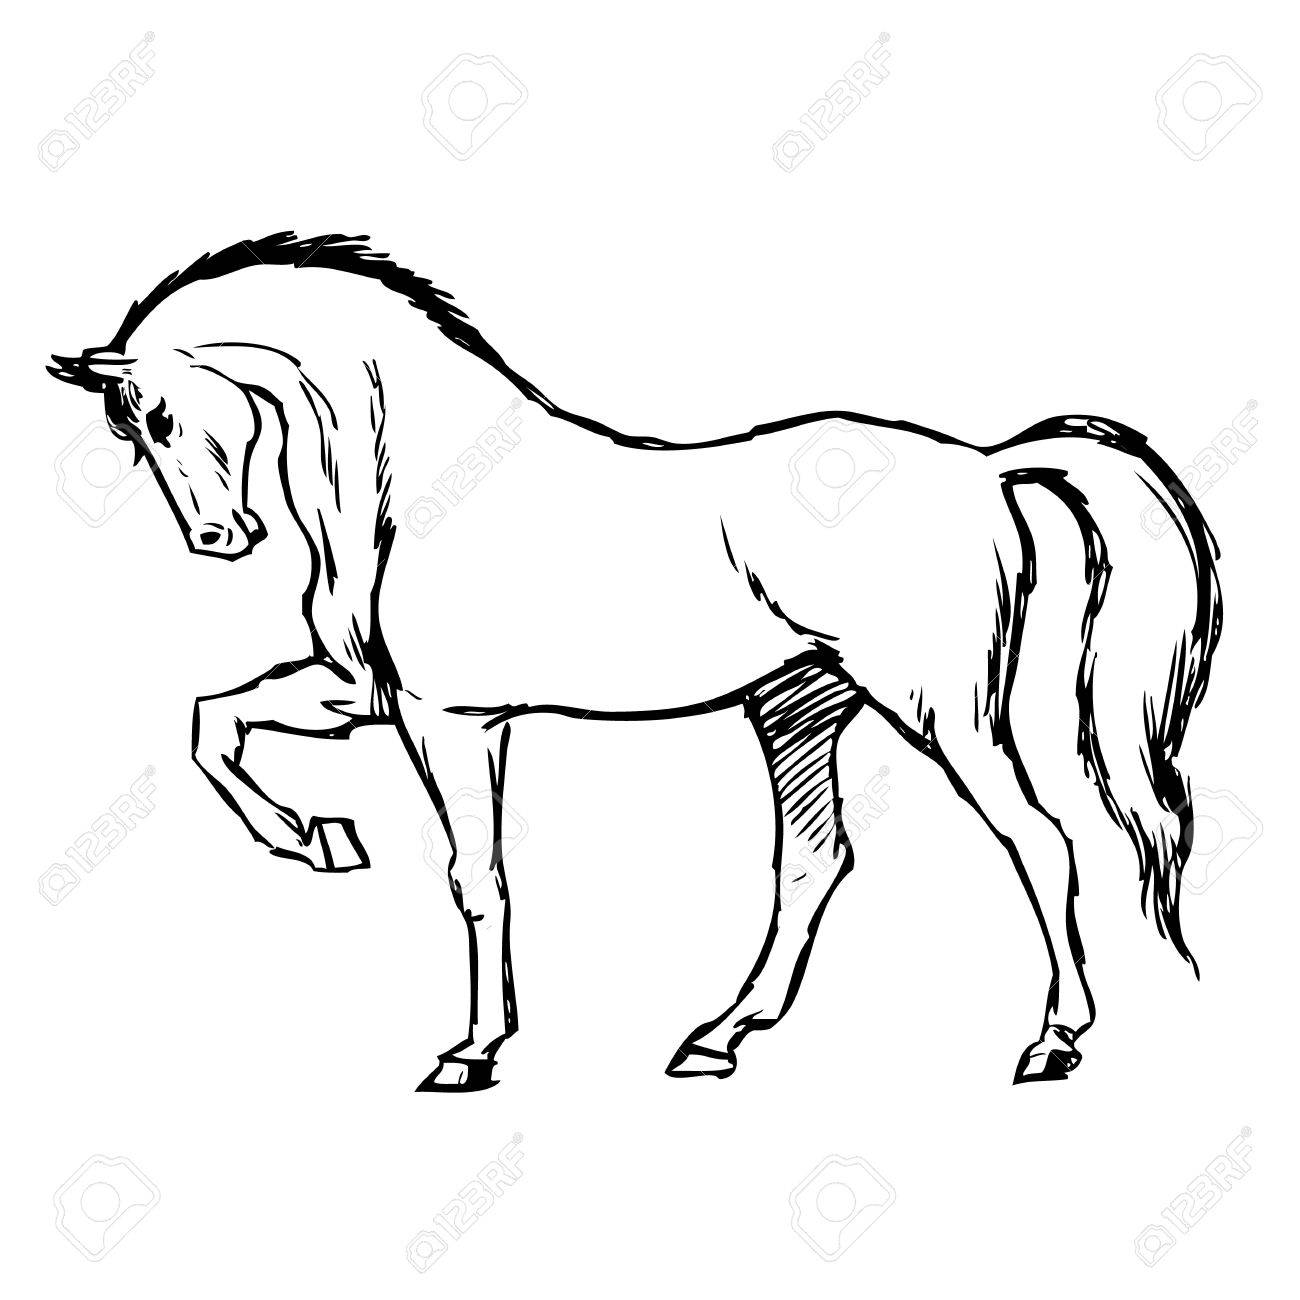 Freehand Sketch Illustration Of Horse Doodle Hand Drawn Royalty Free Cliparts Vectors And Stock Illustration Image 80790151